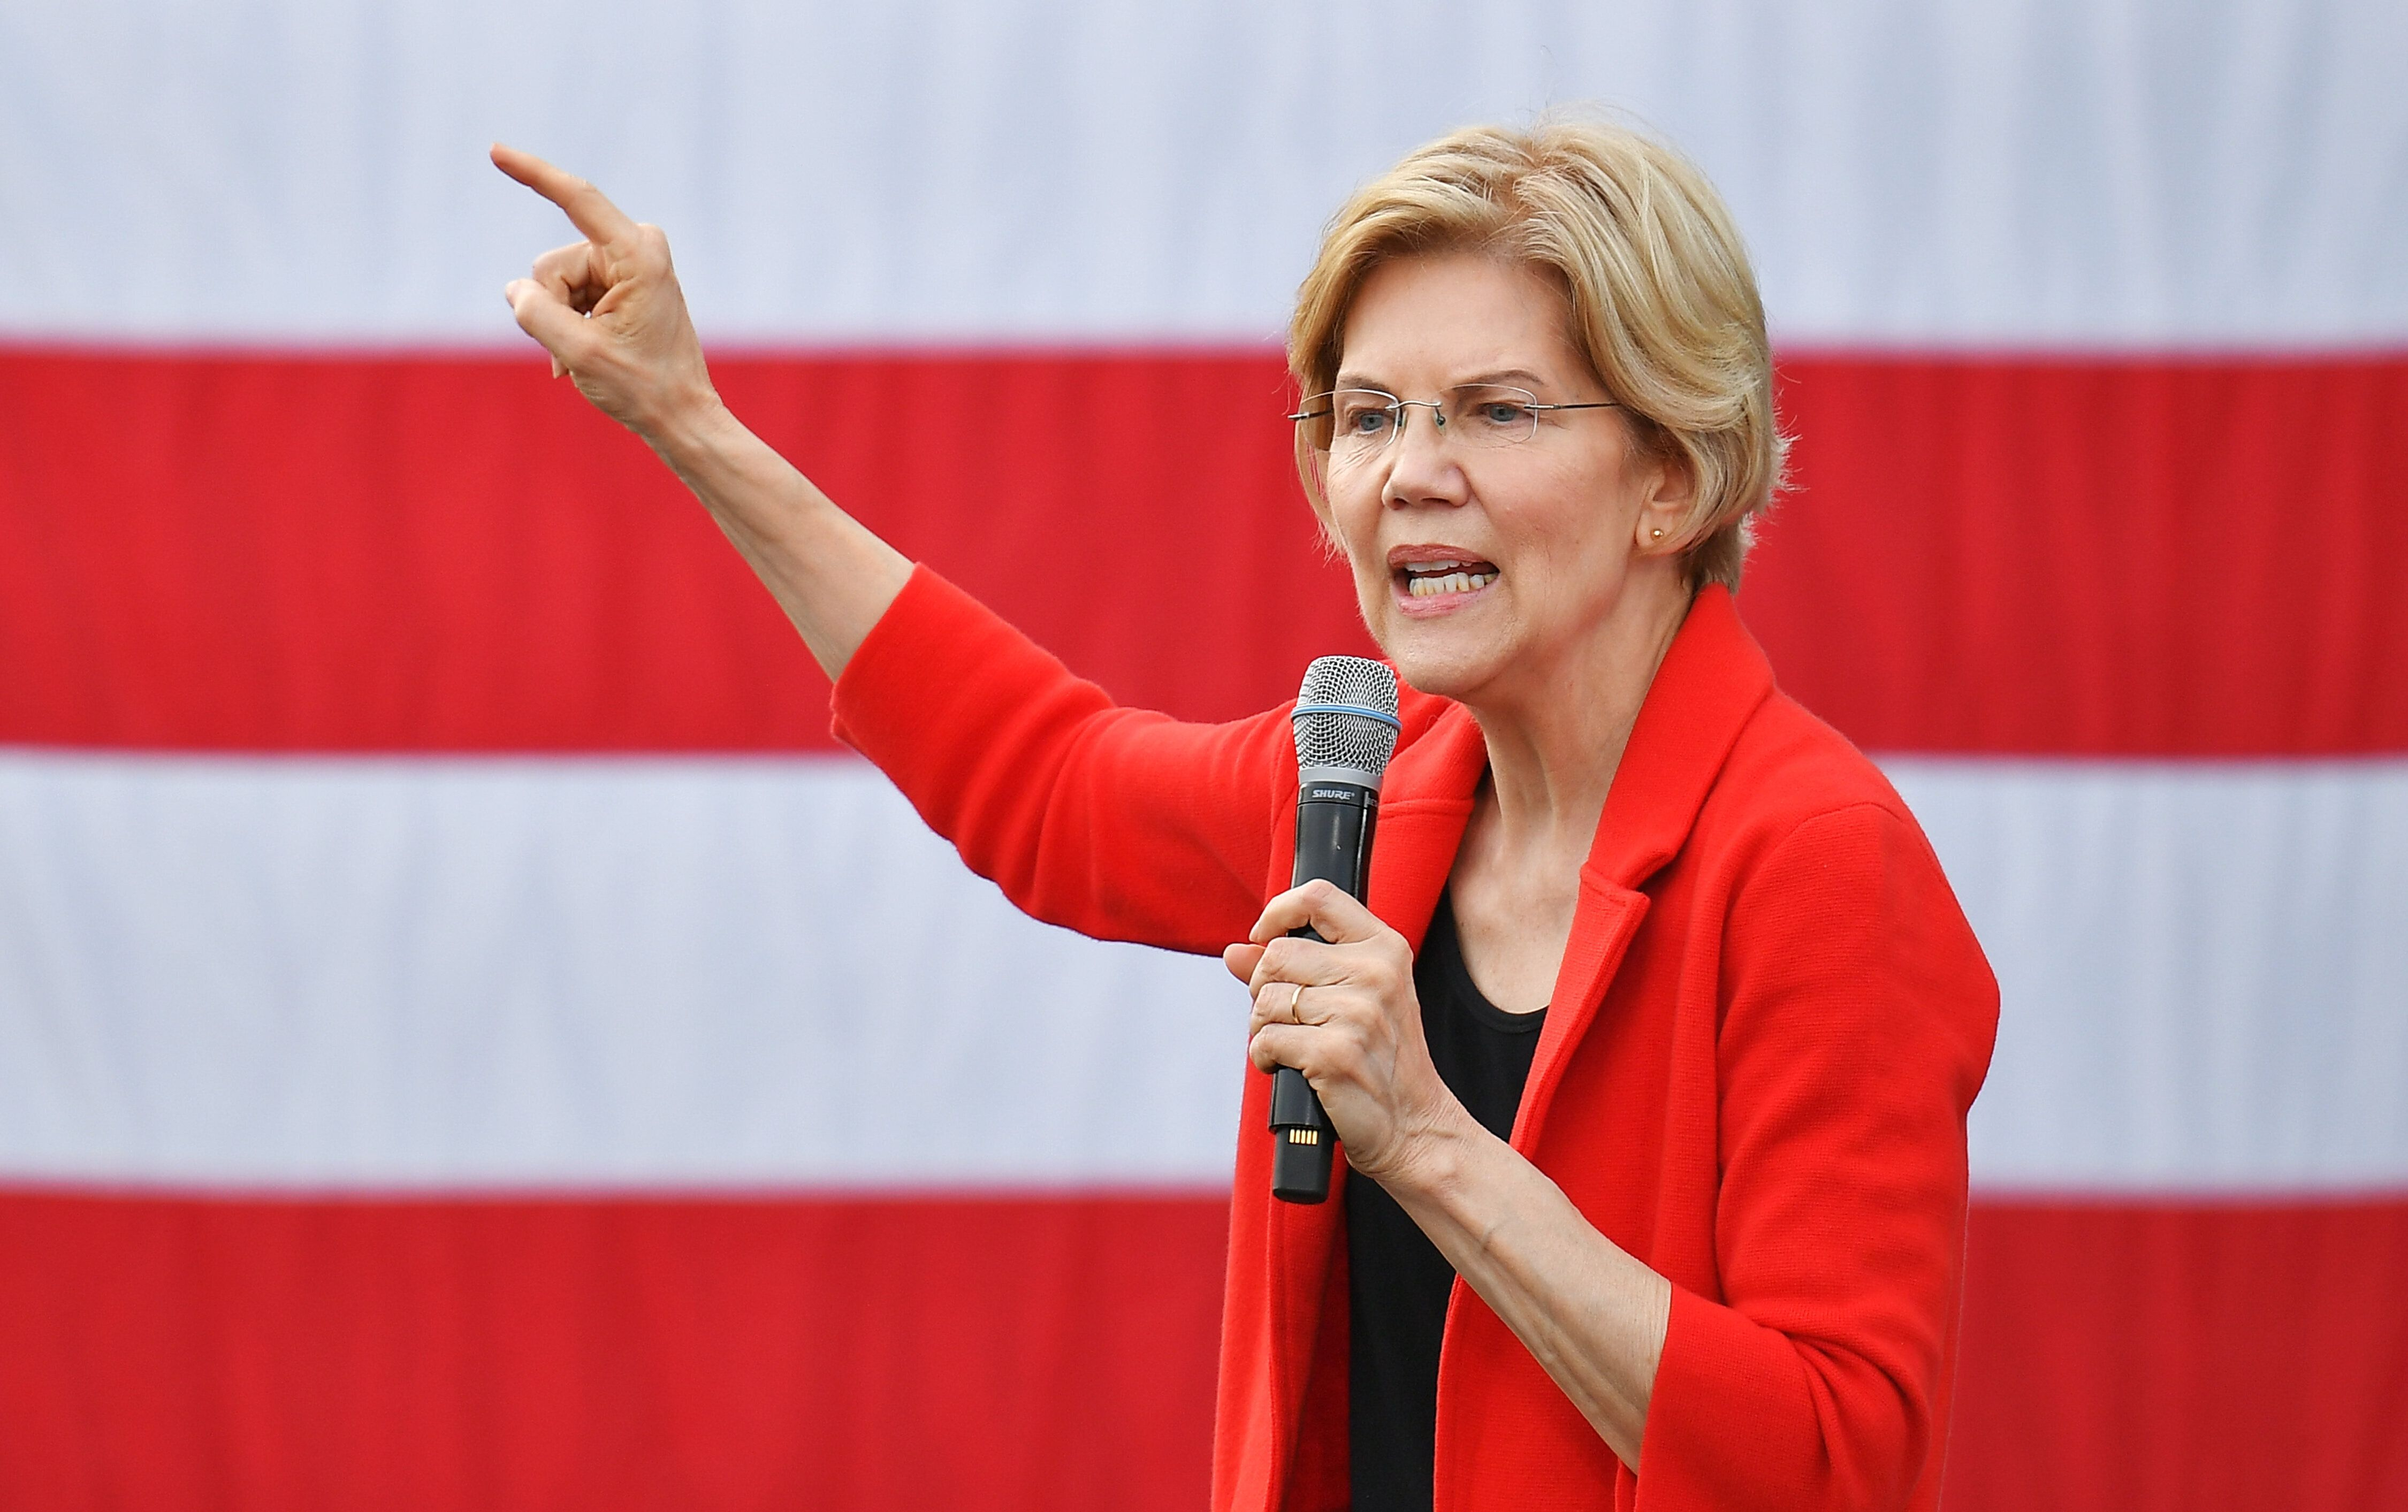 With her campaign, Elizabeth Warren is positioning herself as a champion for the middle class.